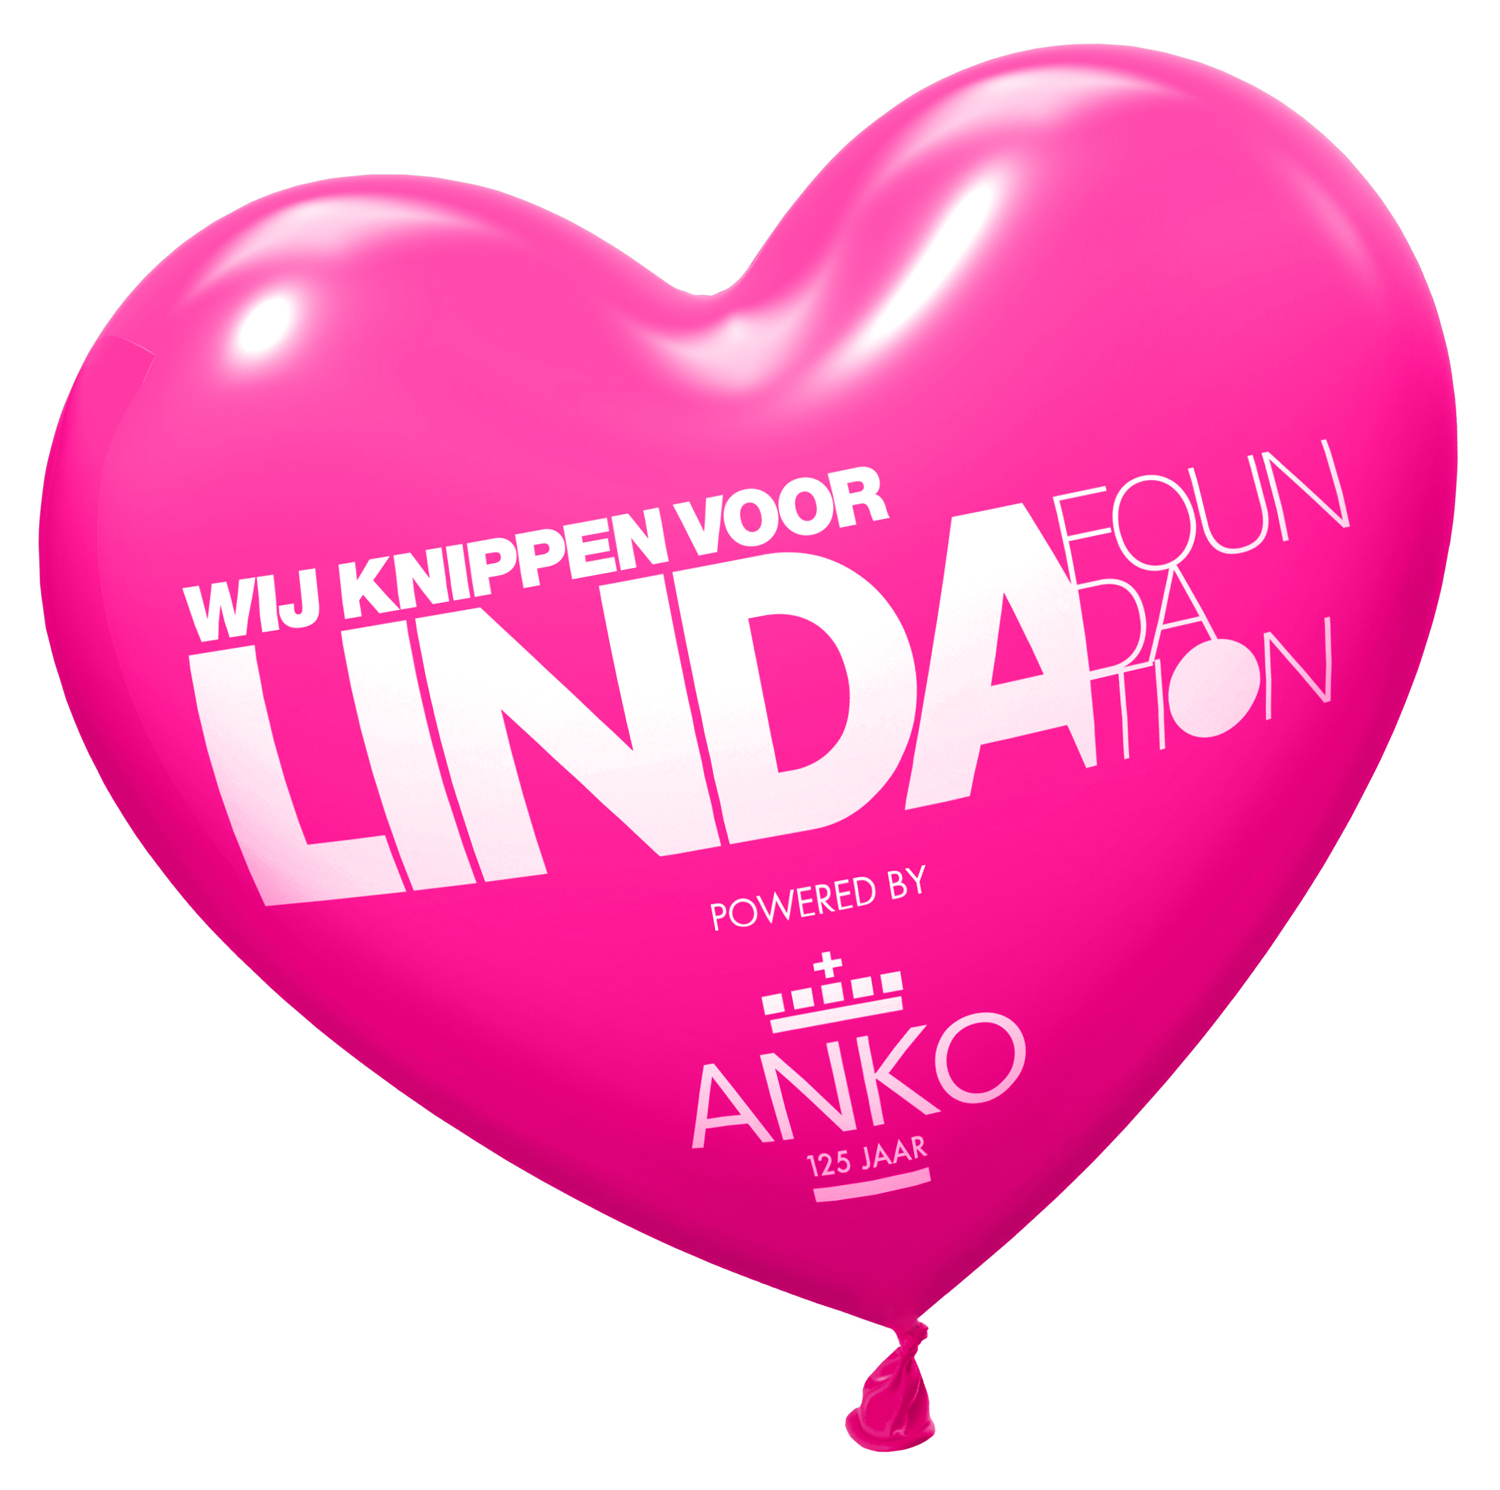 LINDA foundation